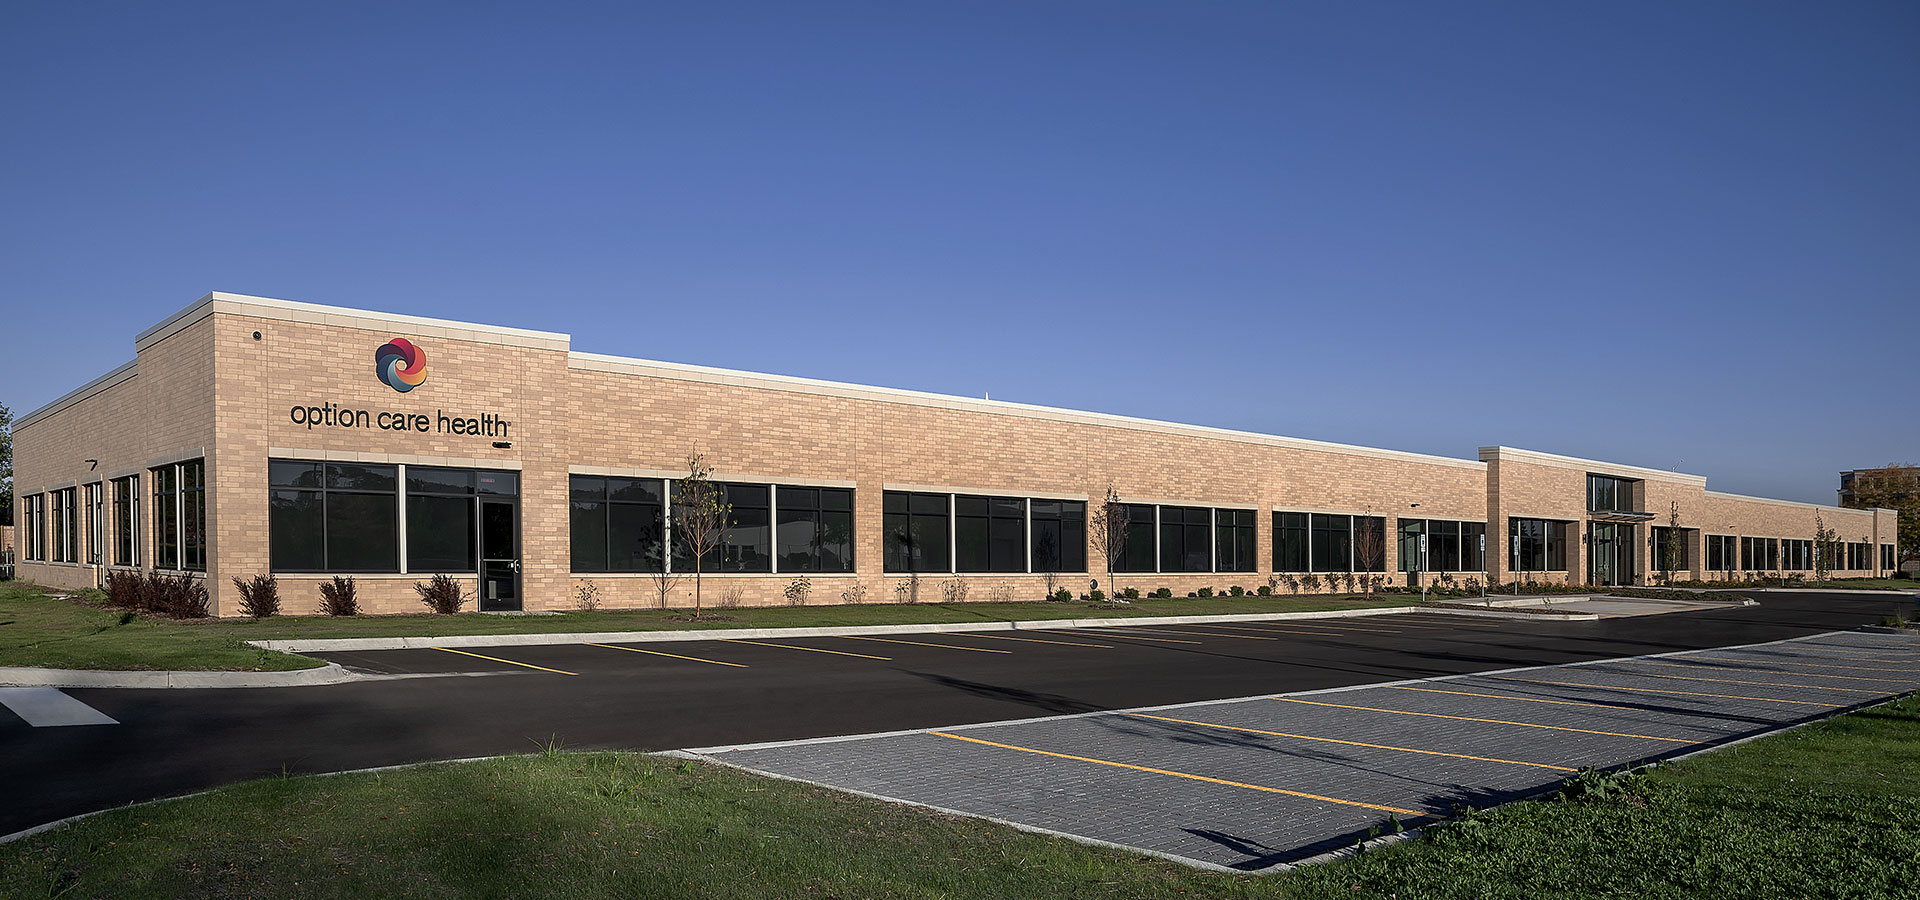 McShane Completes Option Care Health's New Itasca Facility